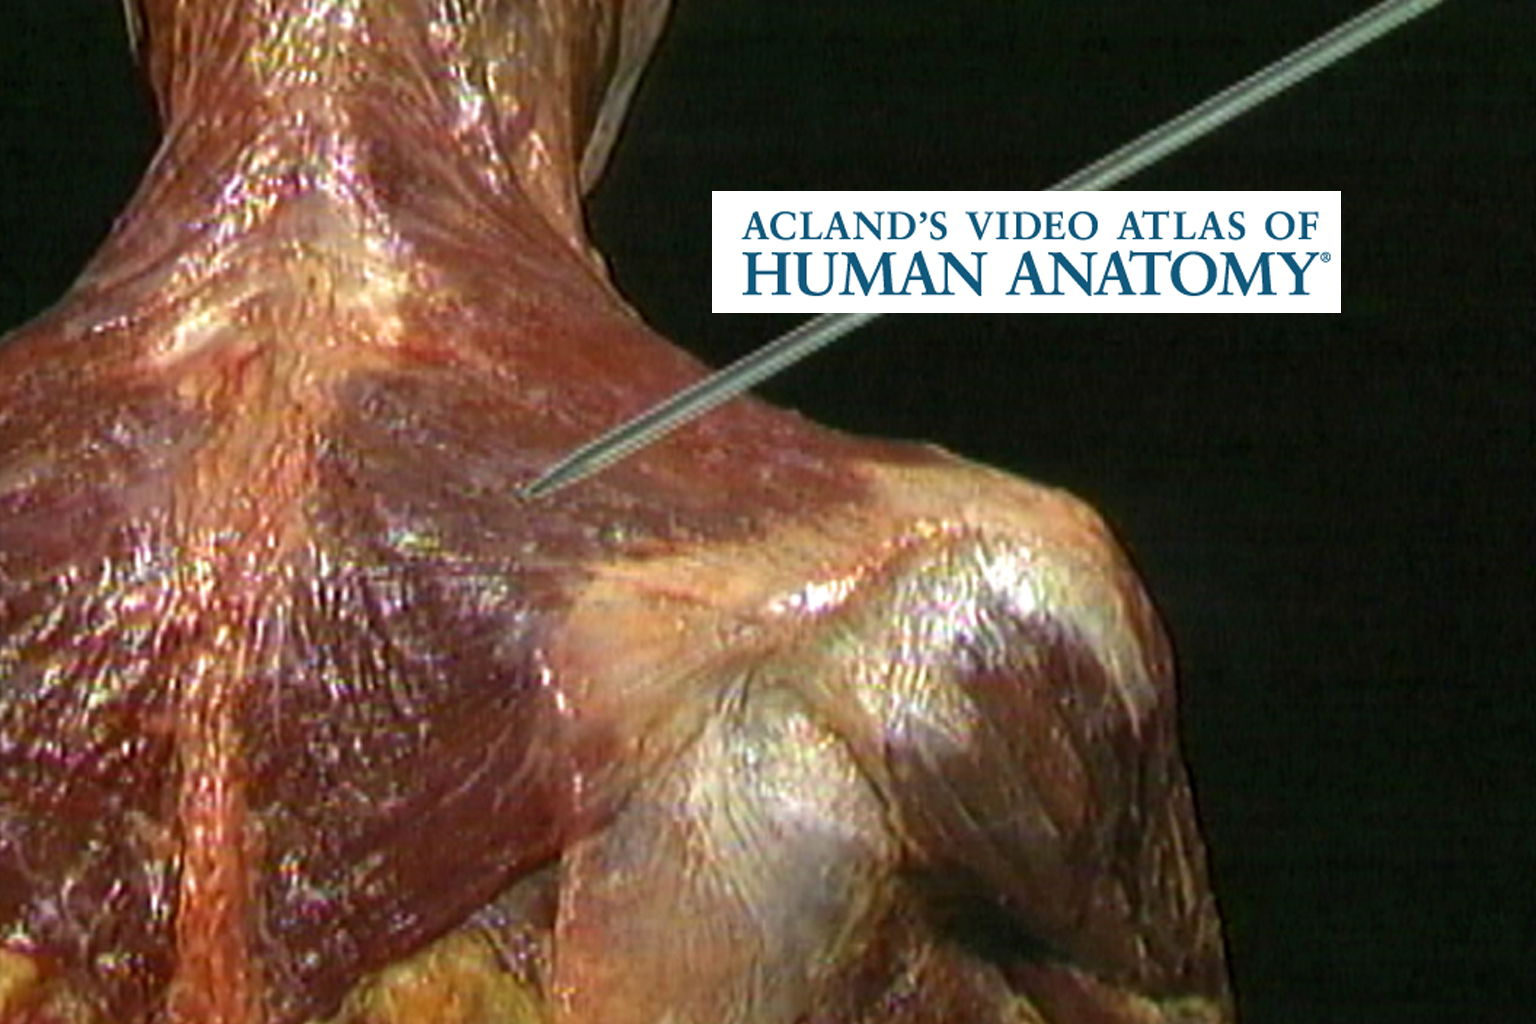 Illustration of shoulder muscles from Acland's video atlas of human anatomy